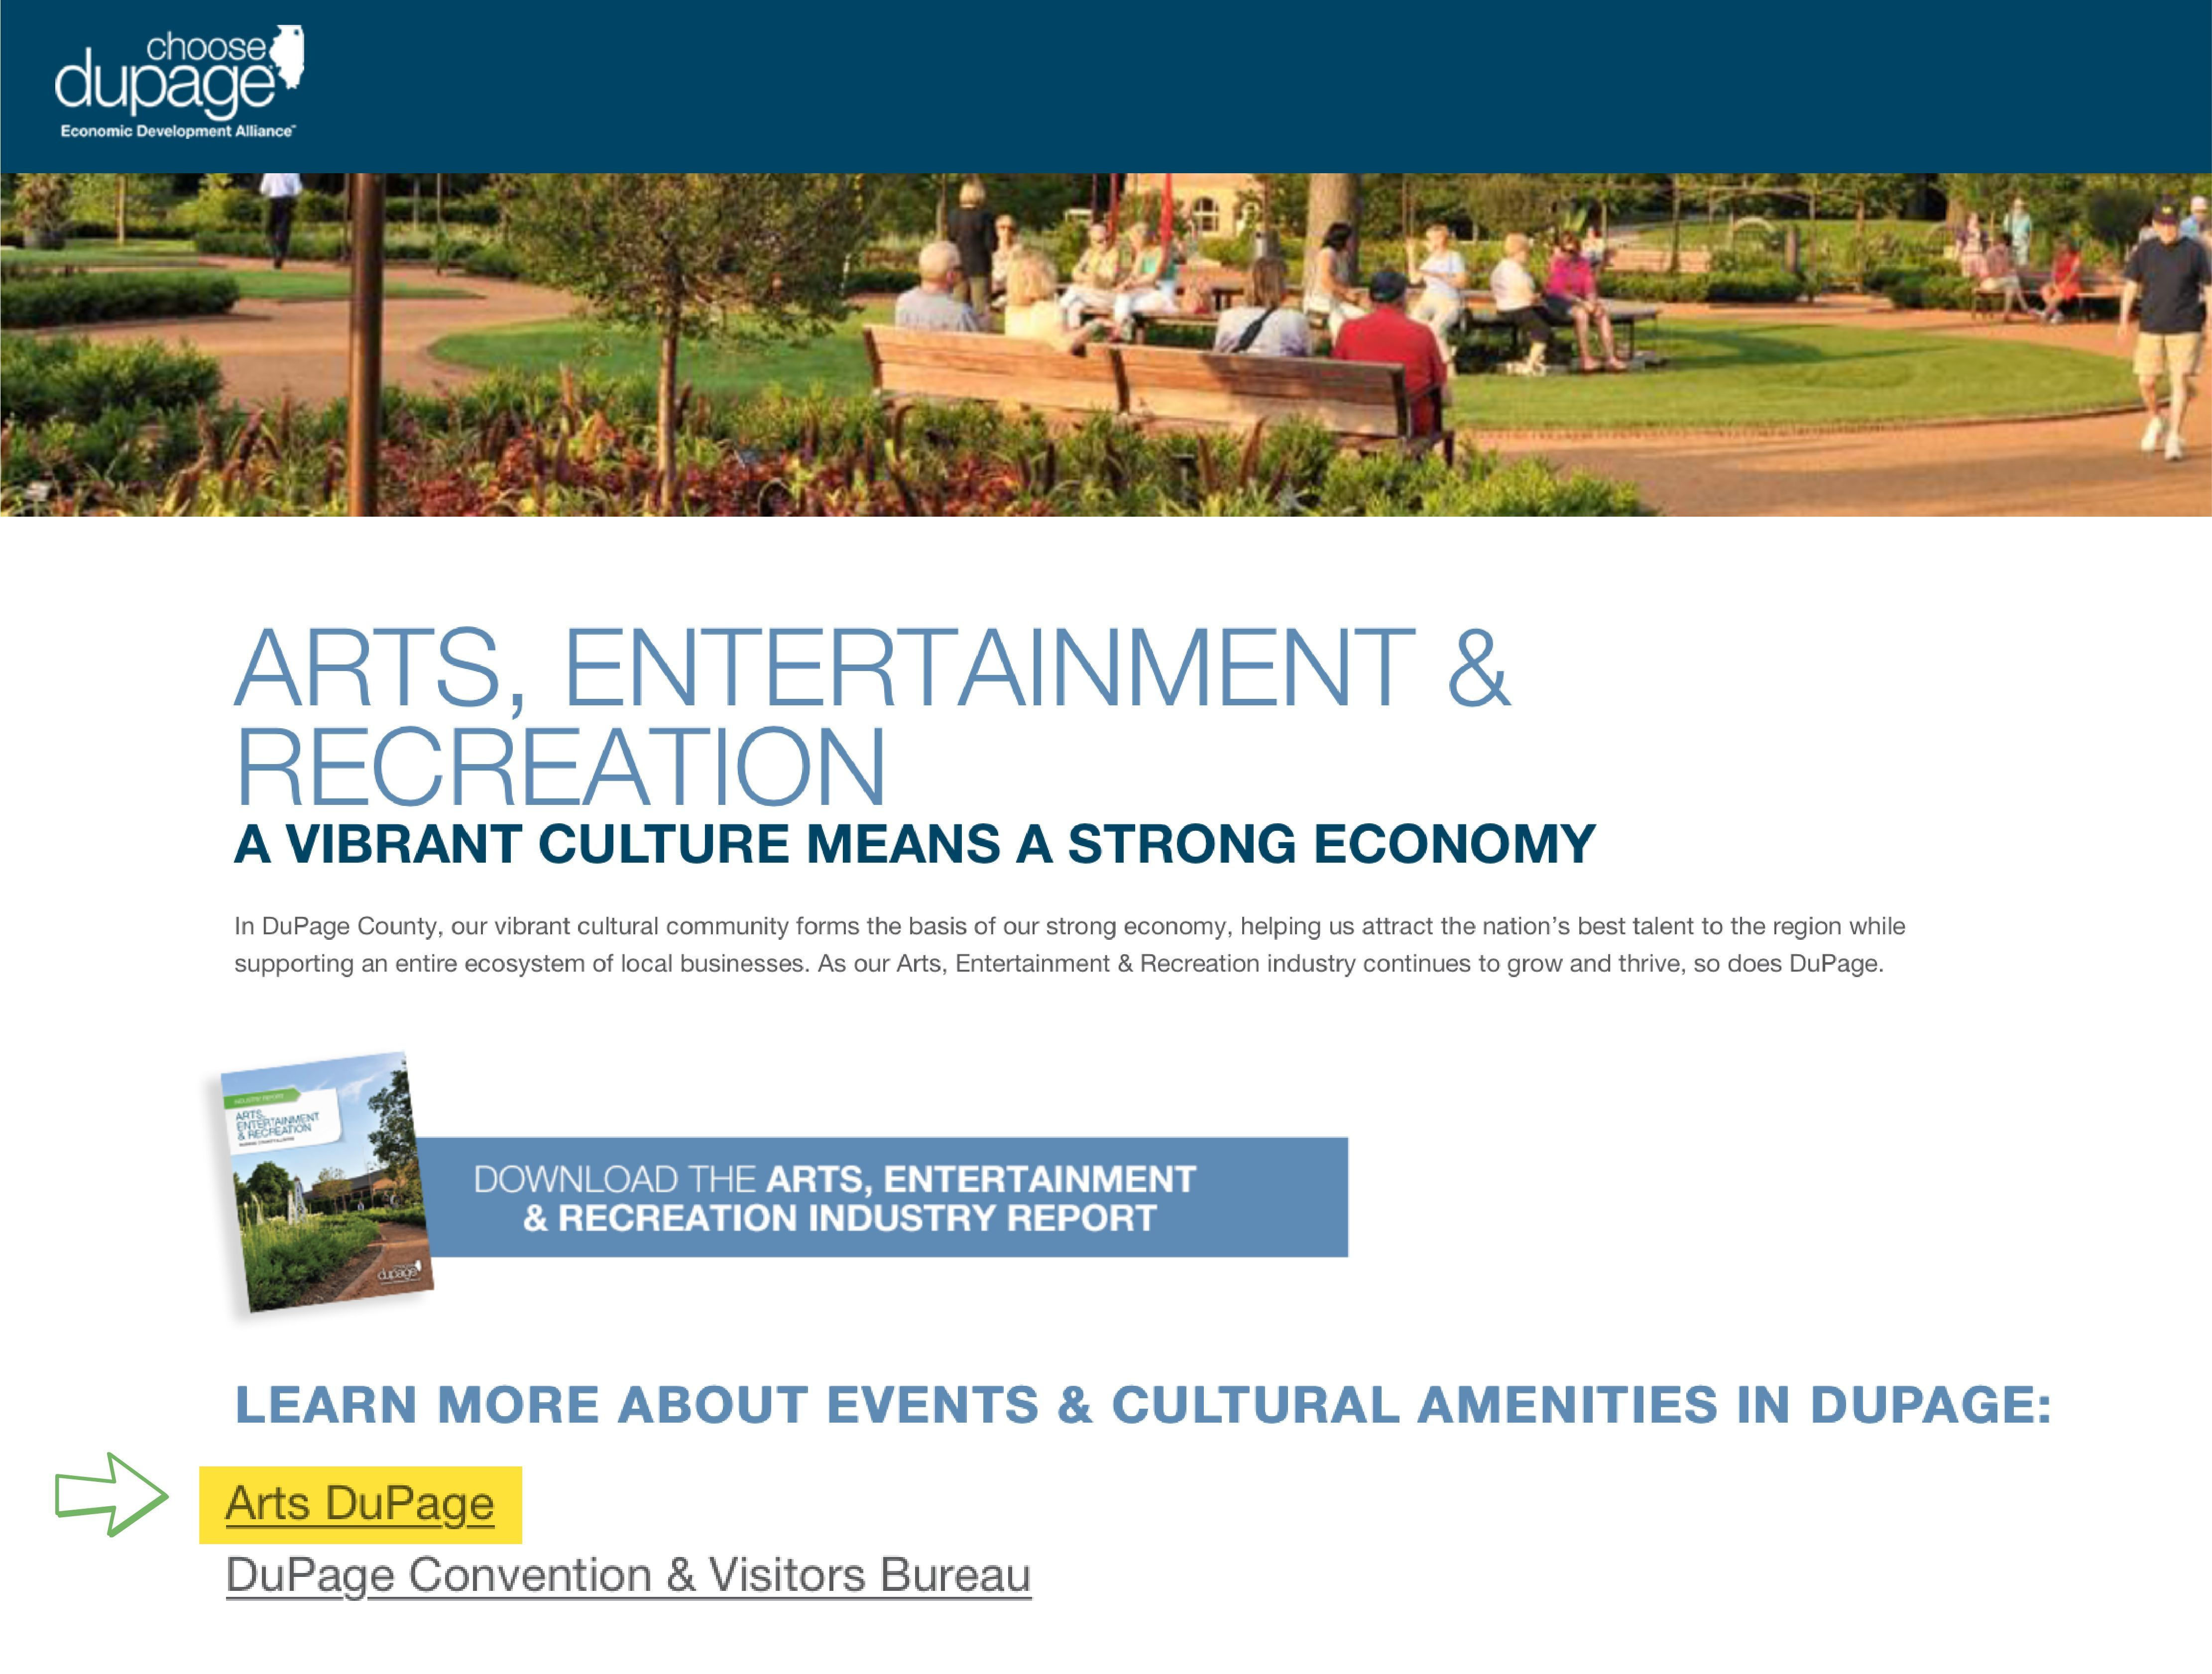 Arts DuPage was recently listed as the top resource for everything art on the arts, entertainment and recreation website section of Choose DuPage.